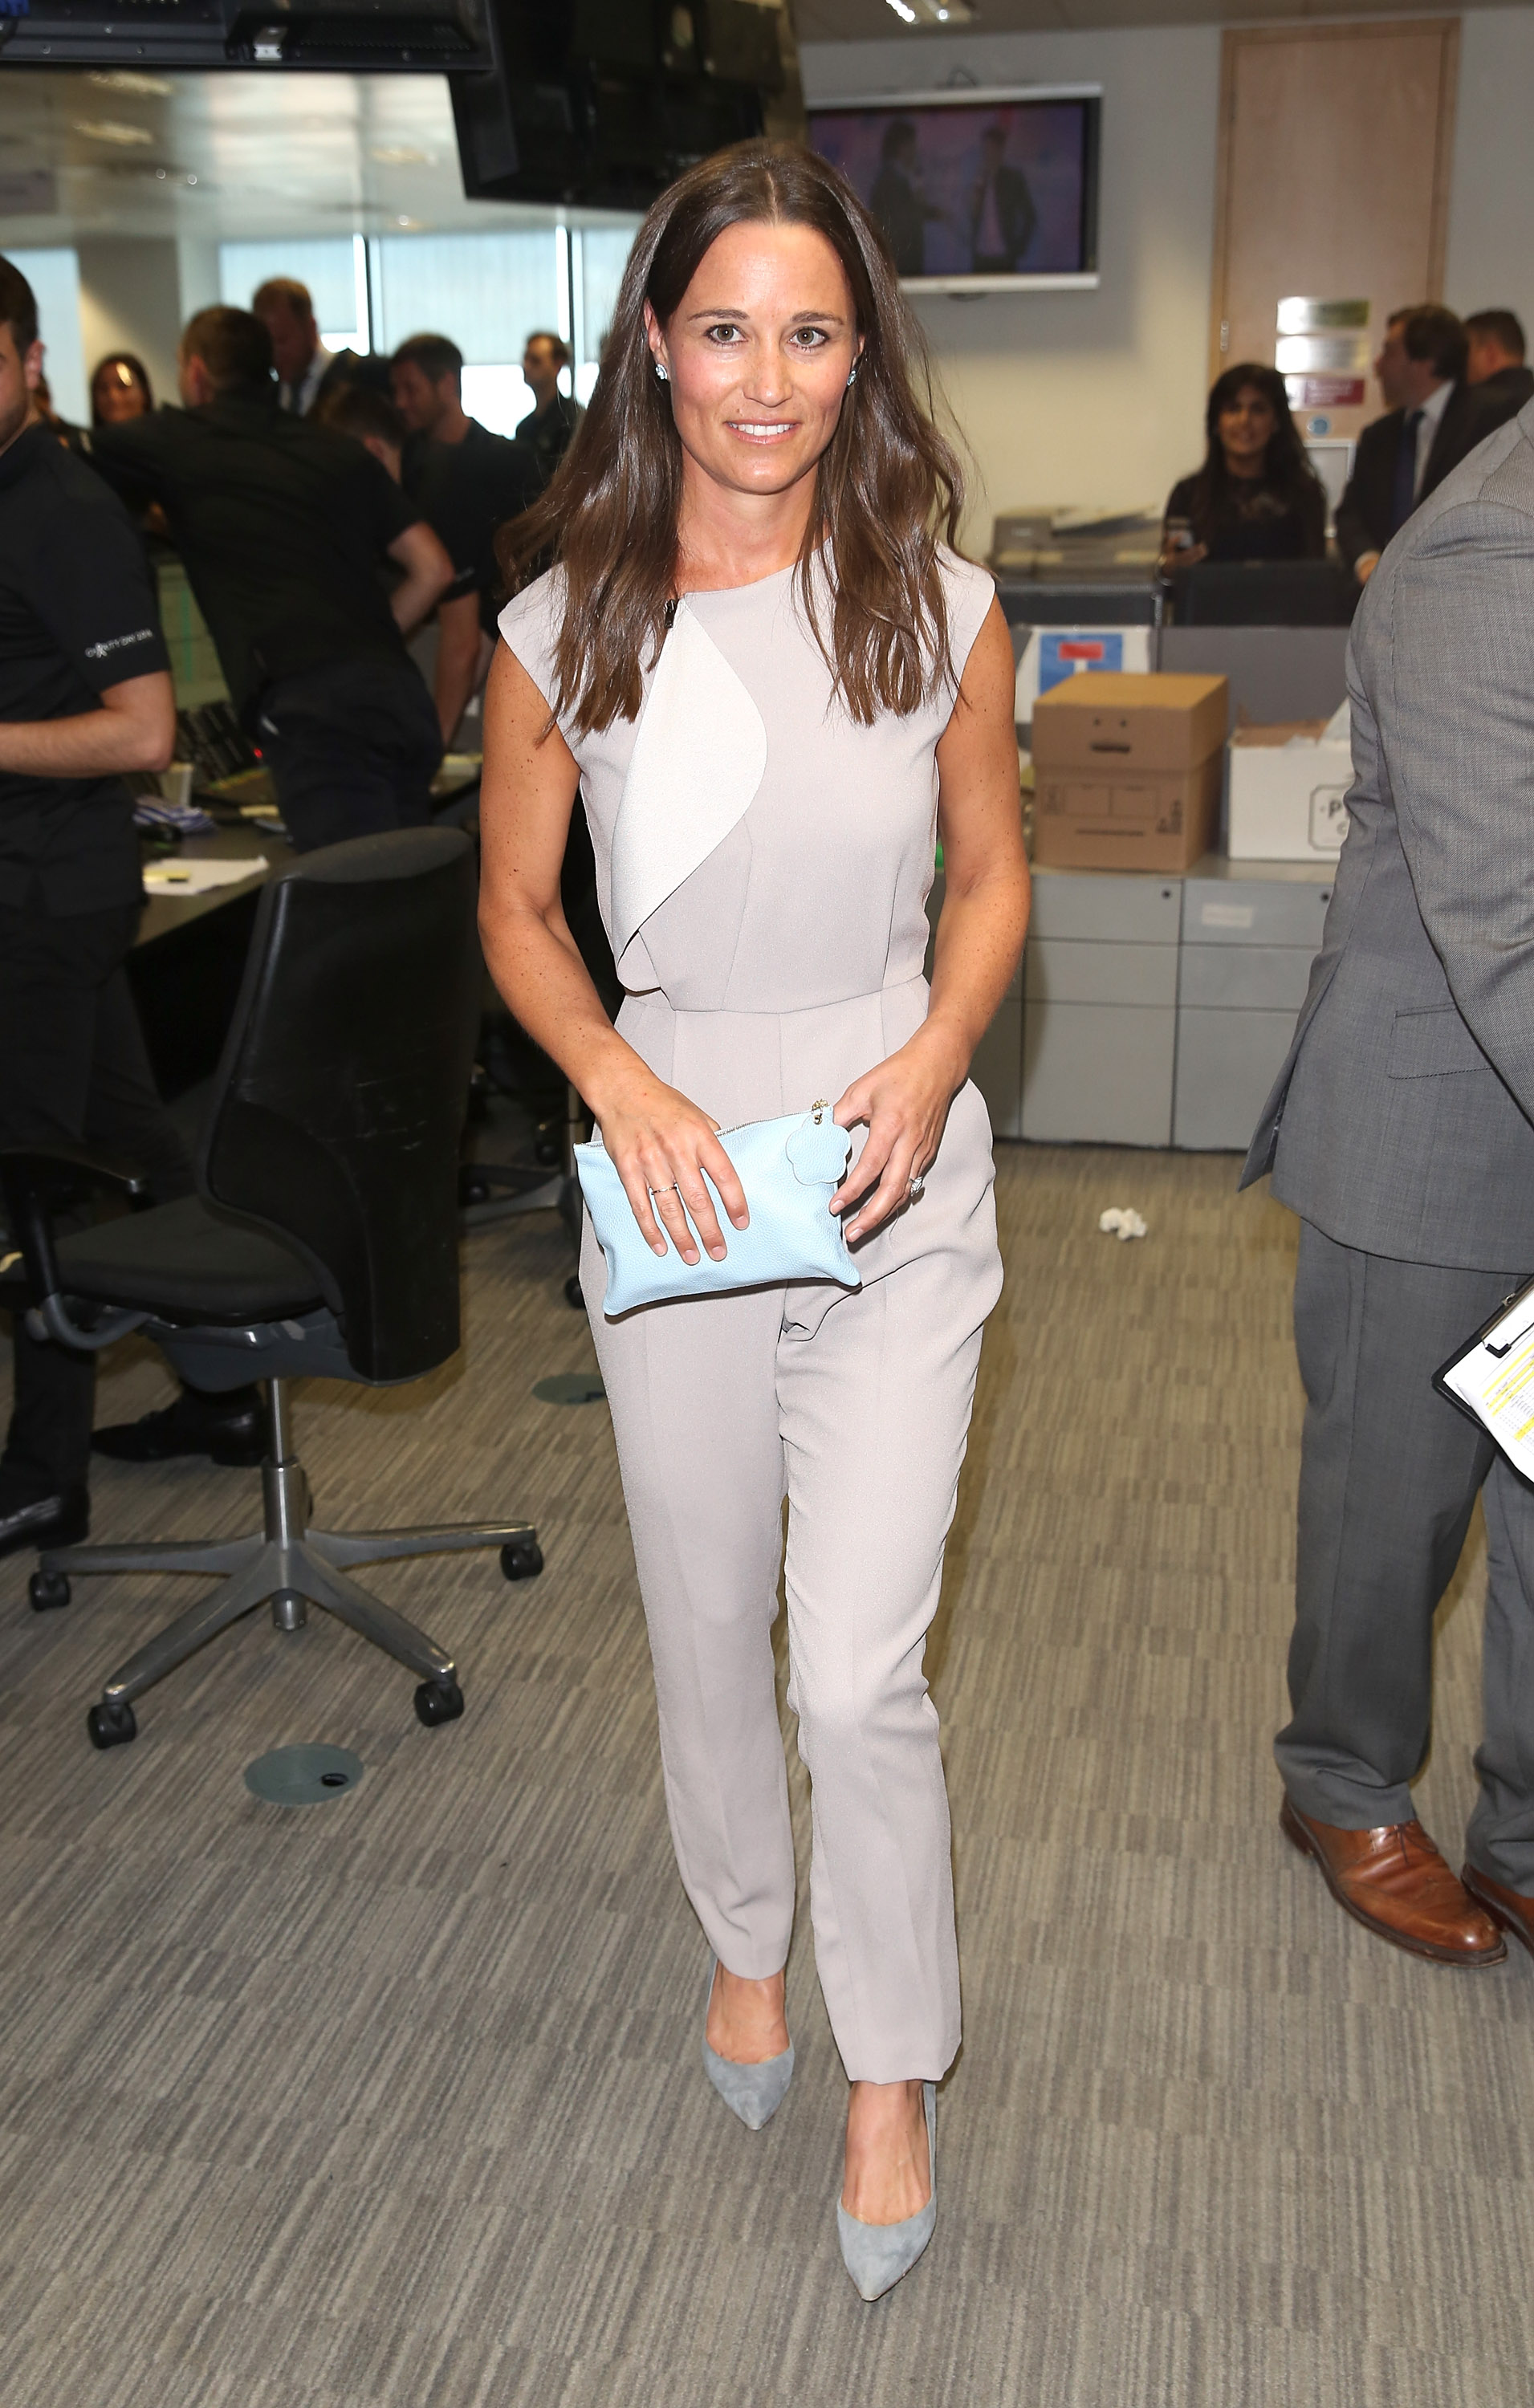 Pippa Middleton flashes glitzy engagement ring at 9/11 event - AOL ...